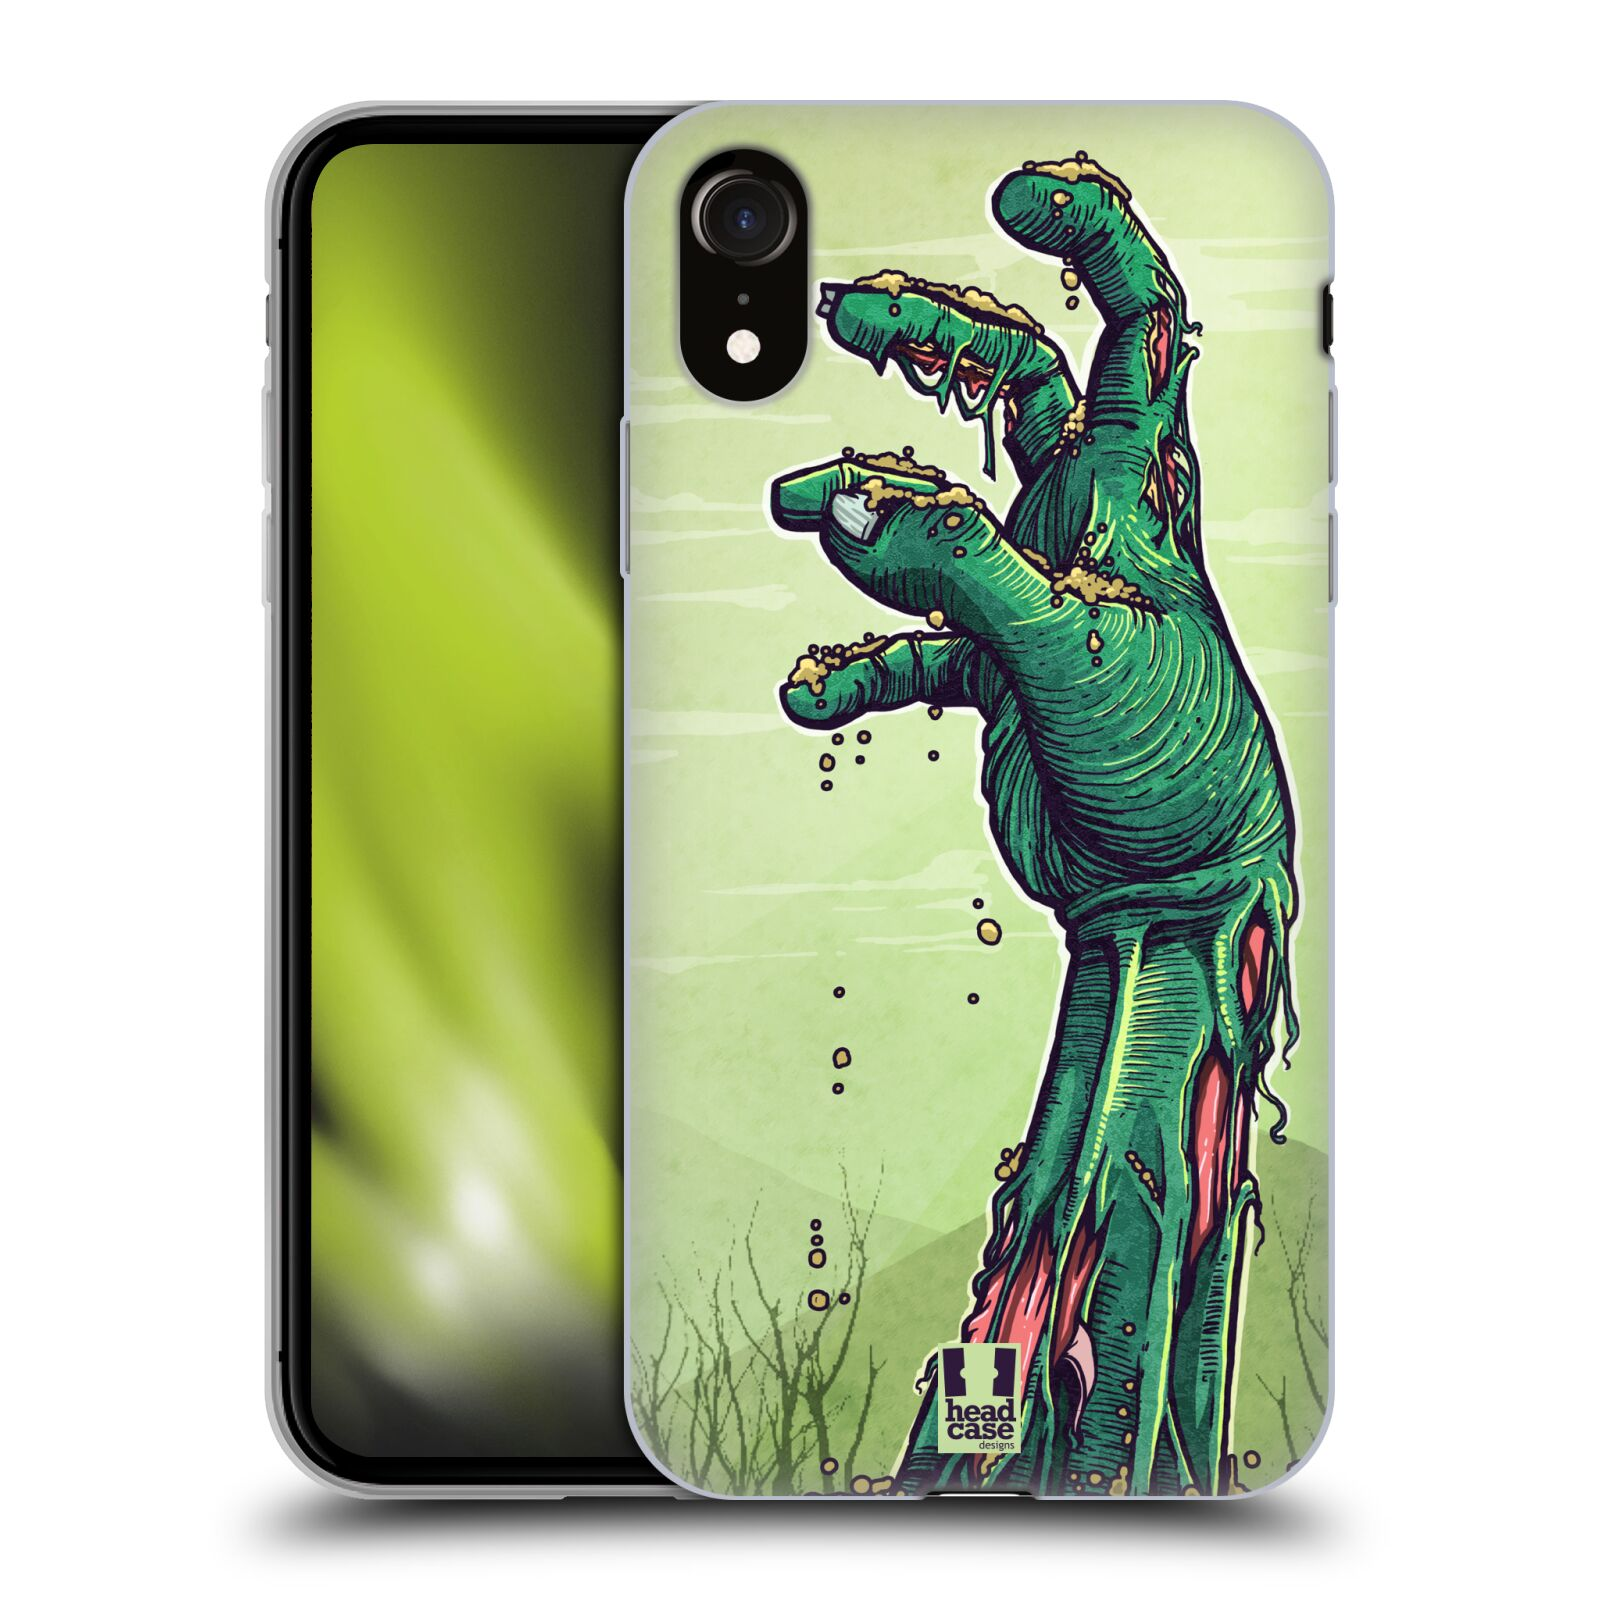 Silikonové pouzdro na mobil Apple iPhone XR - Head Case - ZOMBIE RUKA